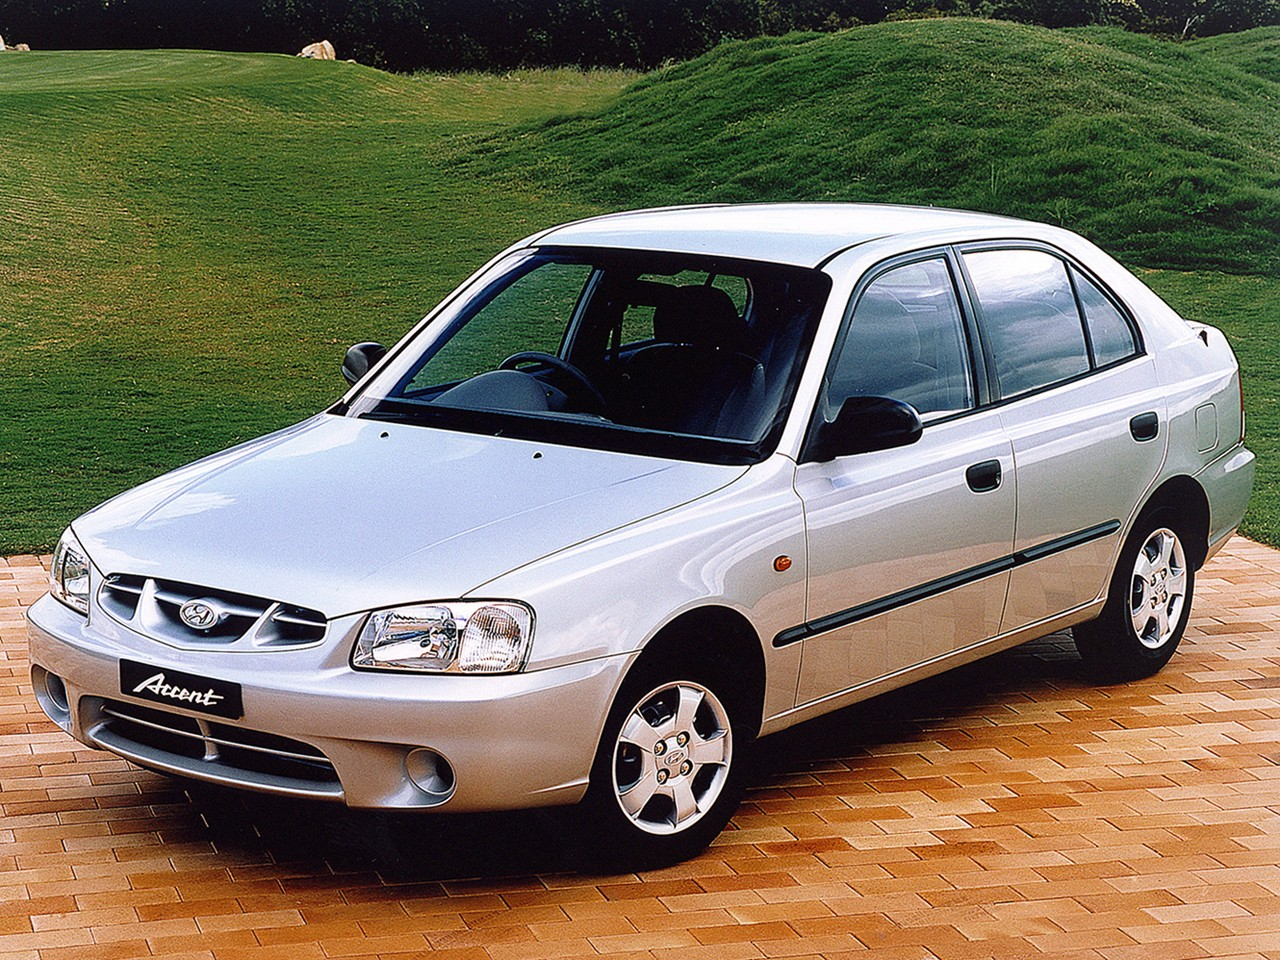 Hyundai Accent 2000 Model >> HYUNDAI Accent 5 Doors - 1999, 2000, 2001, 2002, 2003 - autoevolution